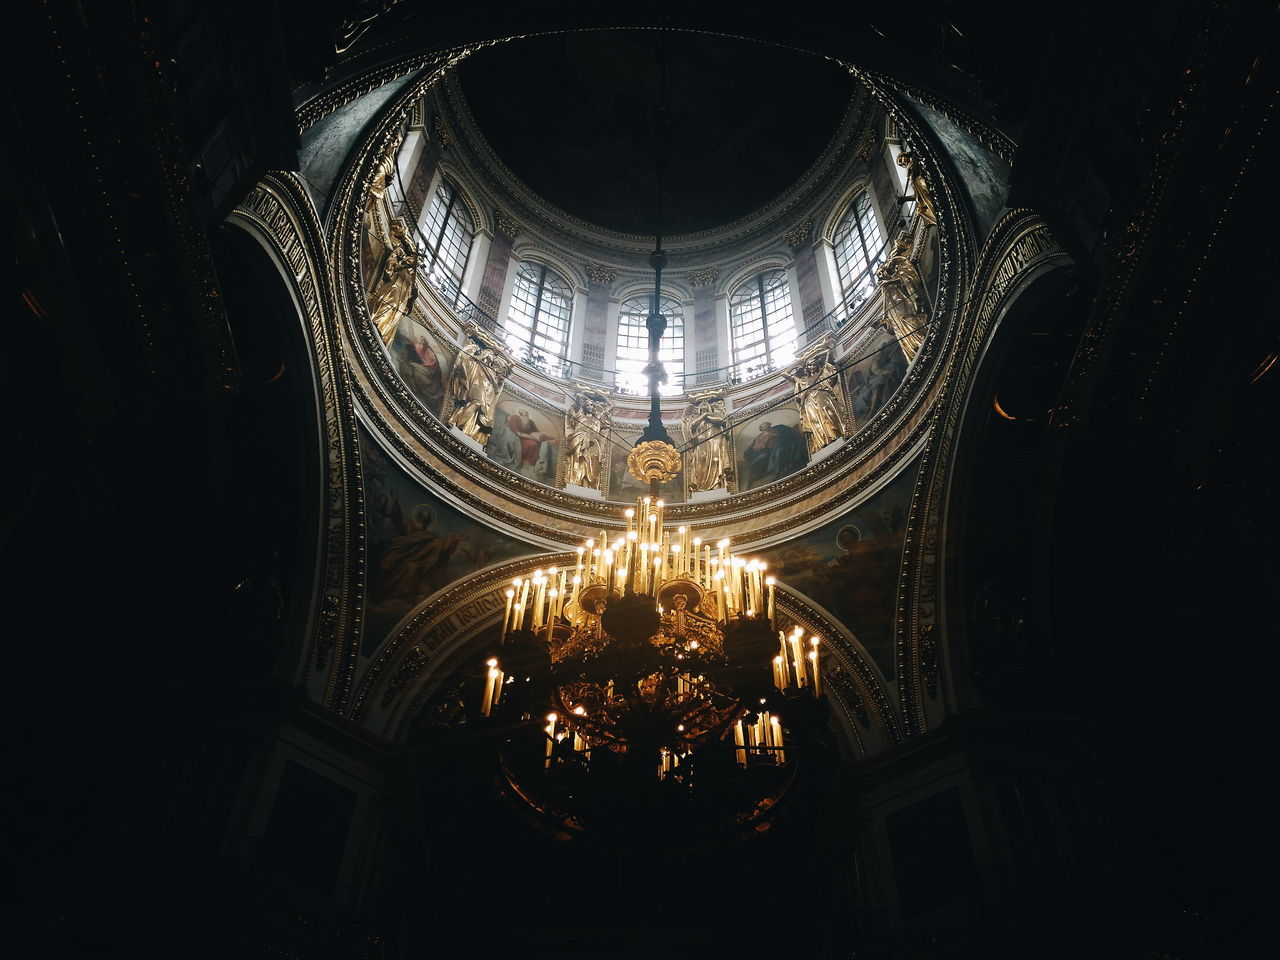 Saint-Petersburg Isaakievskiy Sobor Isaac's Cathedral Russia россия Cathedral Dark Candels First Eyeem Photo Likeforlike Like4like Followme Follow4follow FirstEyeEmPic